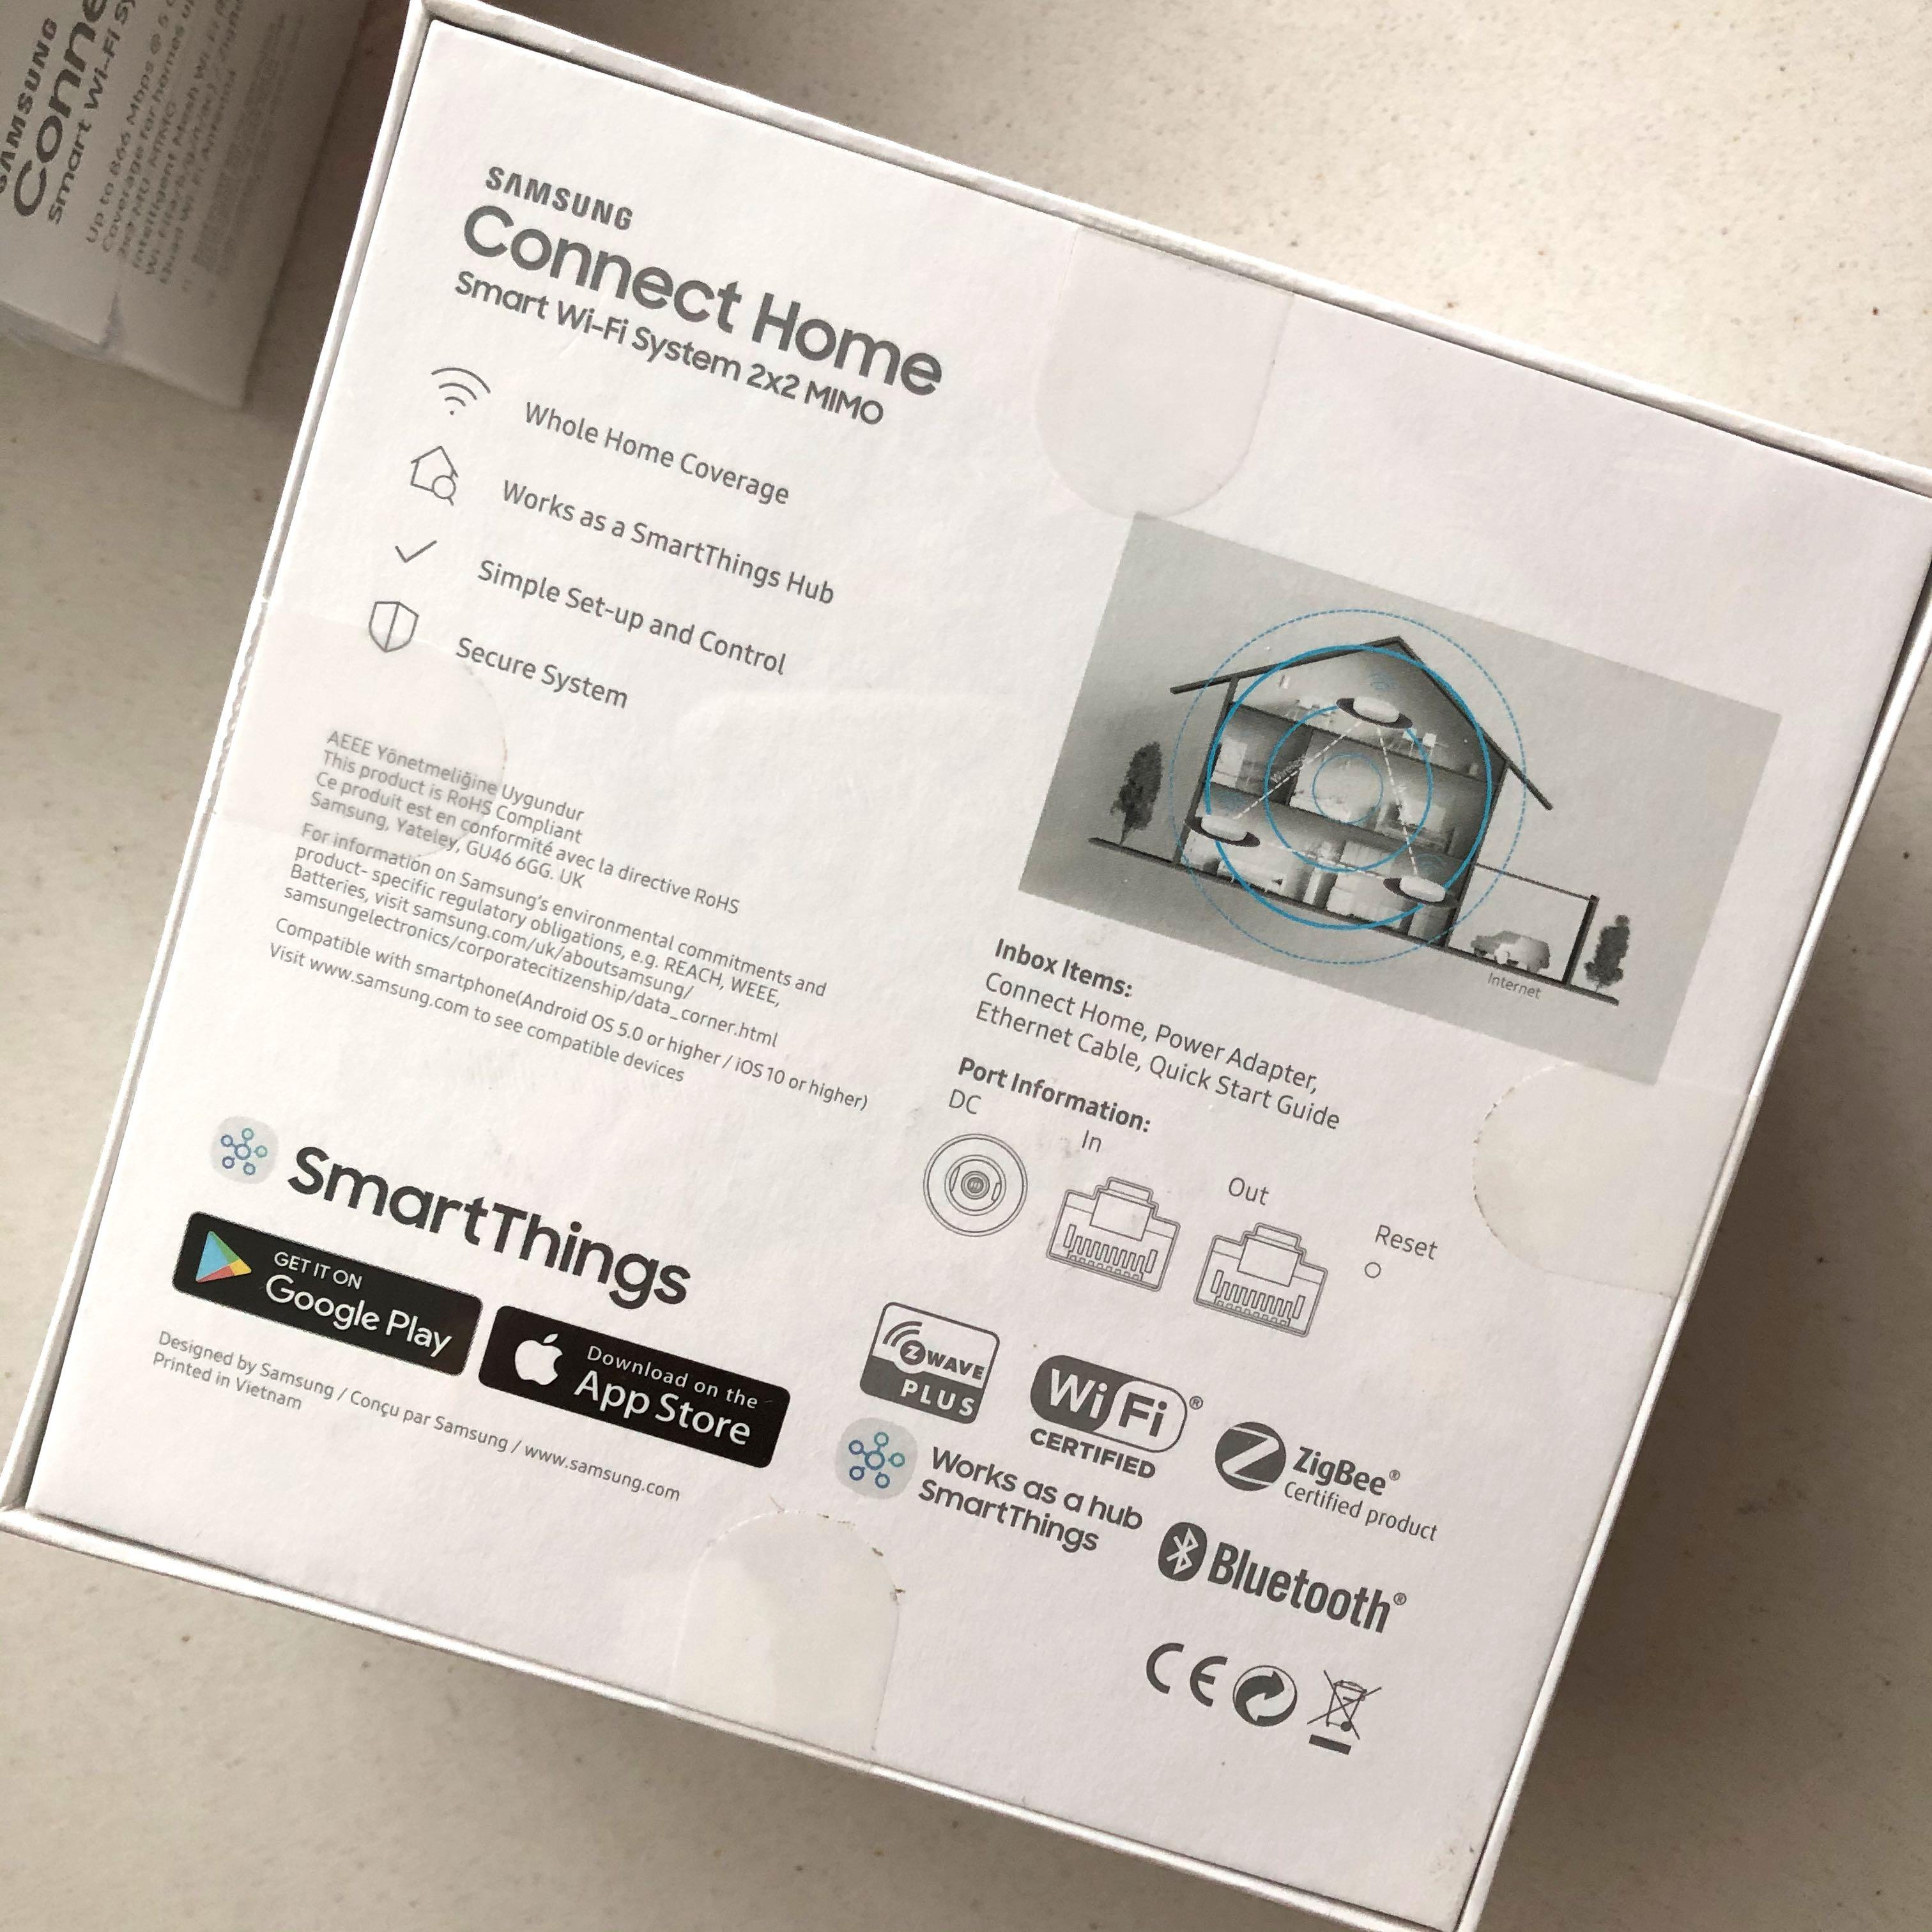 Samsung Connect Home- Smart WiFi System